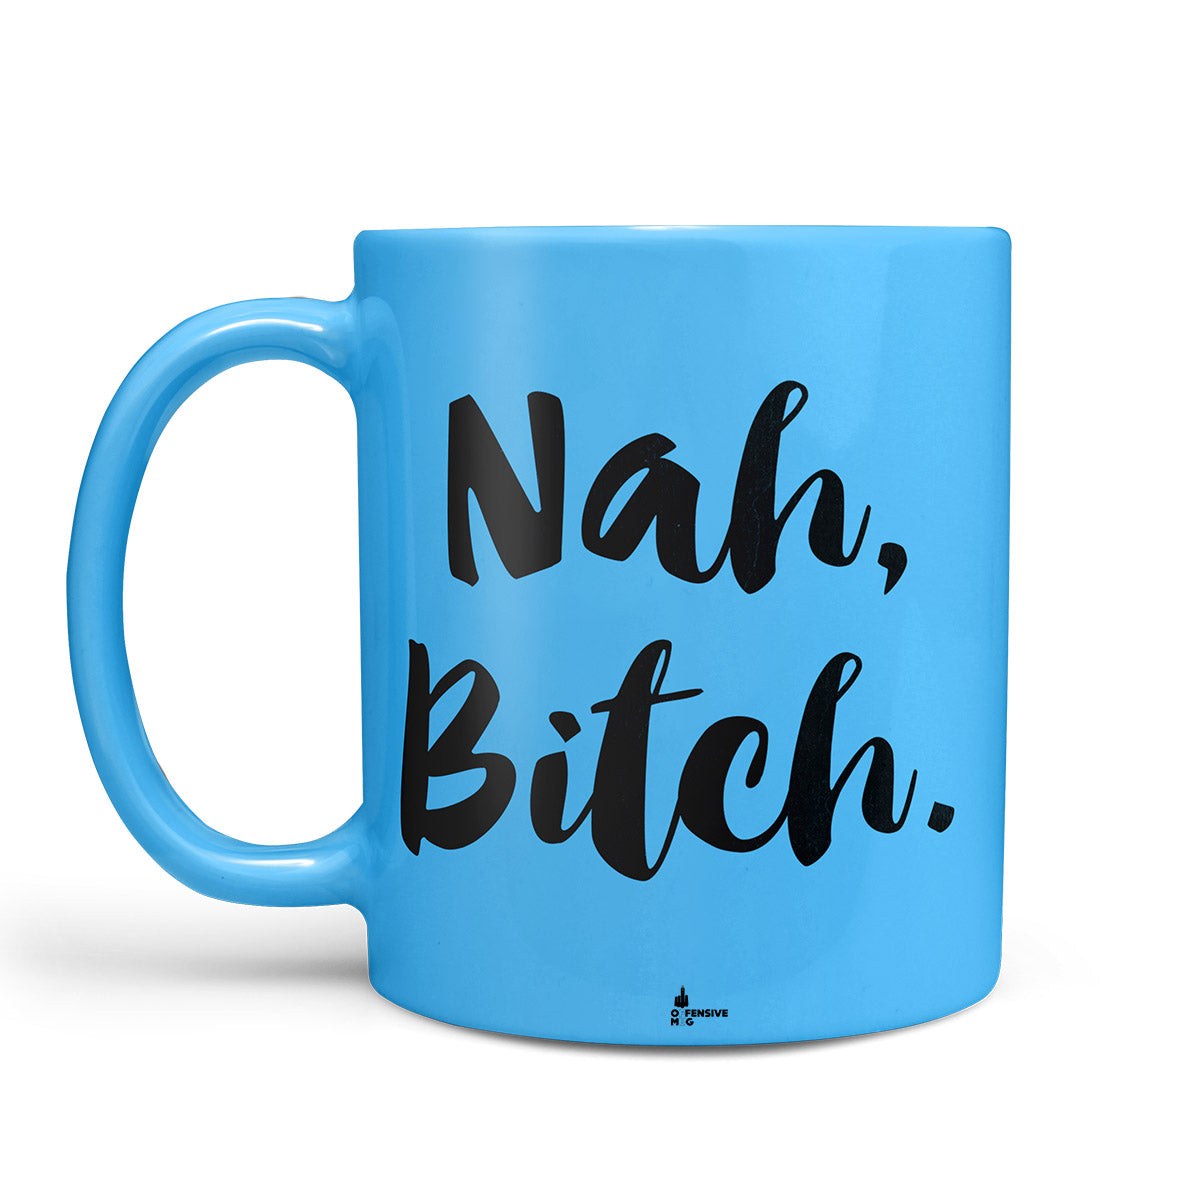 Jessica Color Mug - Offensive Mug